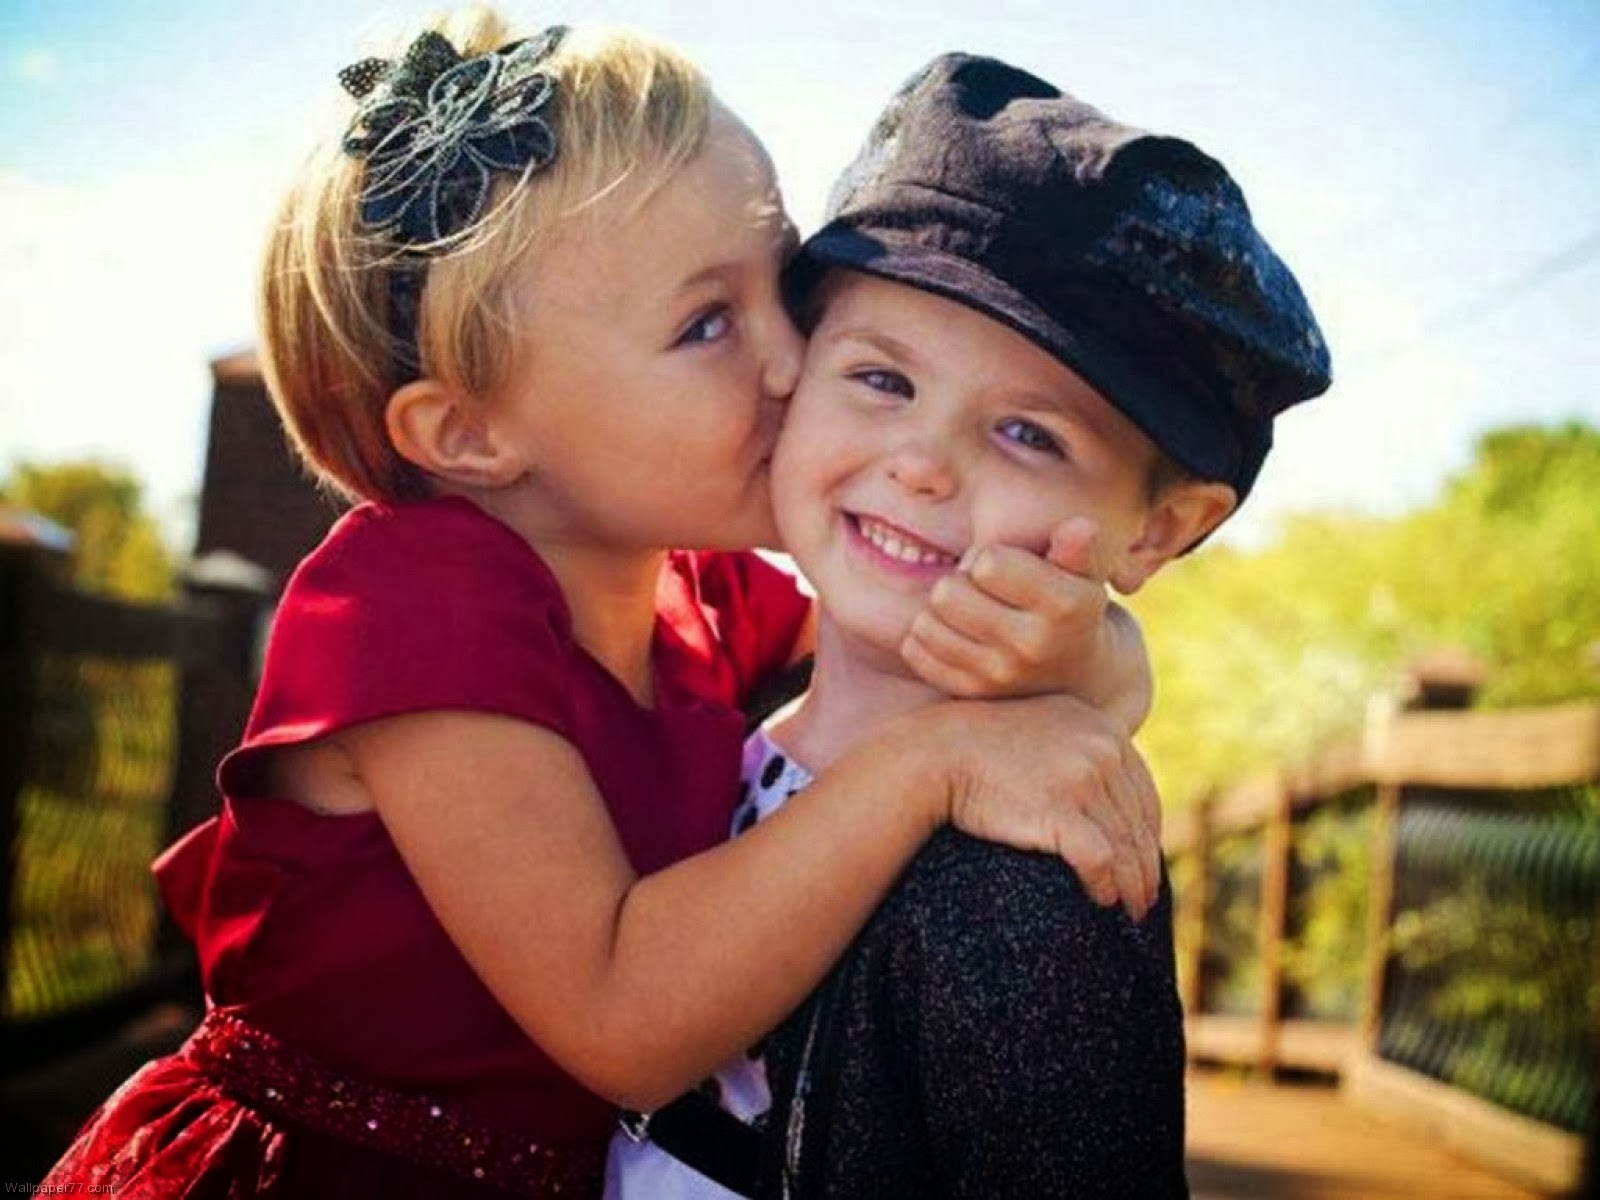 Beutifull Cute Hd Wallpapers Baby Kiss Desktop Dounlod -8366